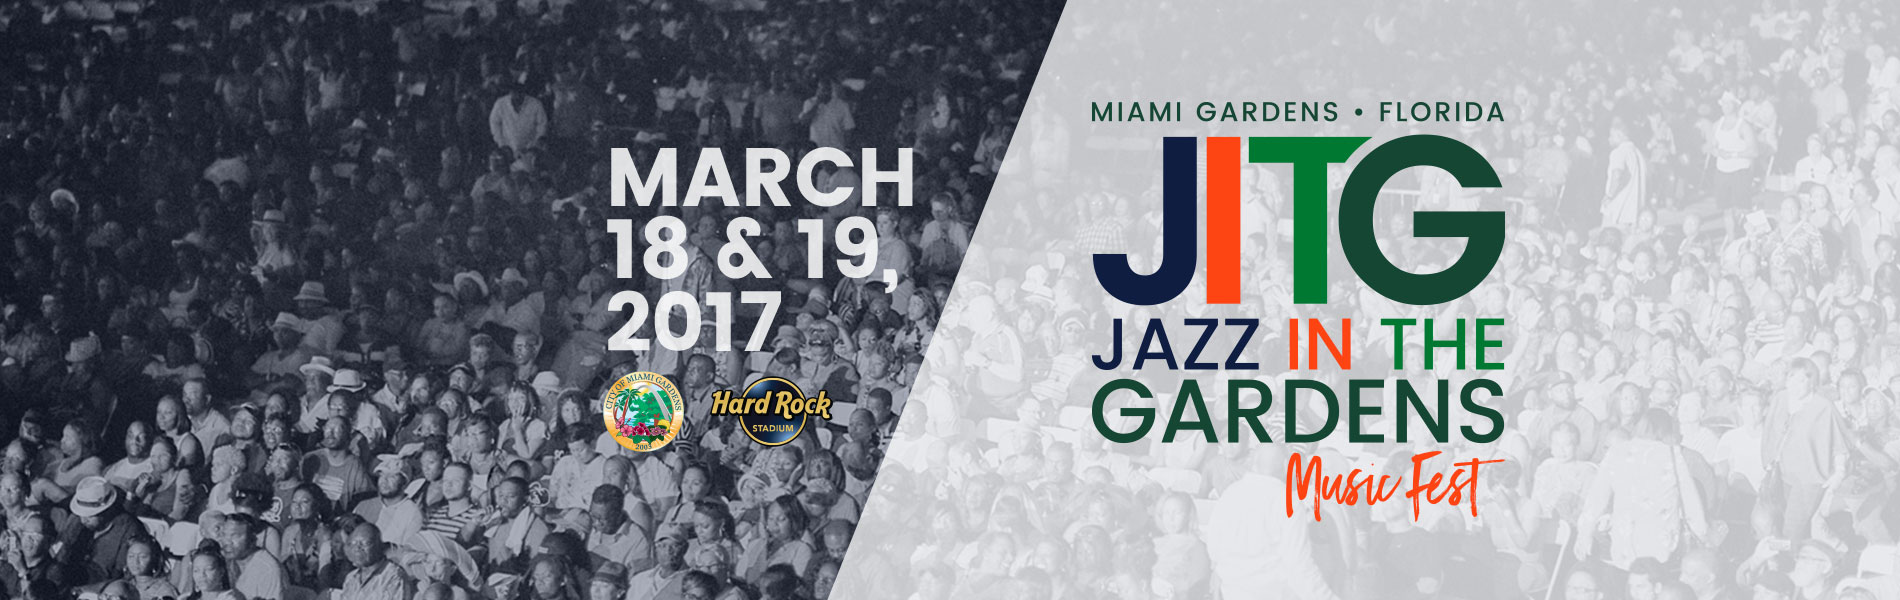 jazz in the gardens jazz in the gardens miami gardens